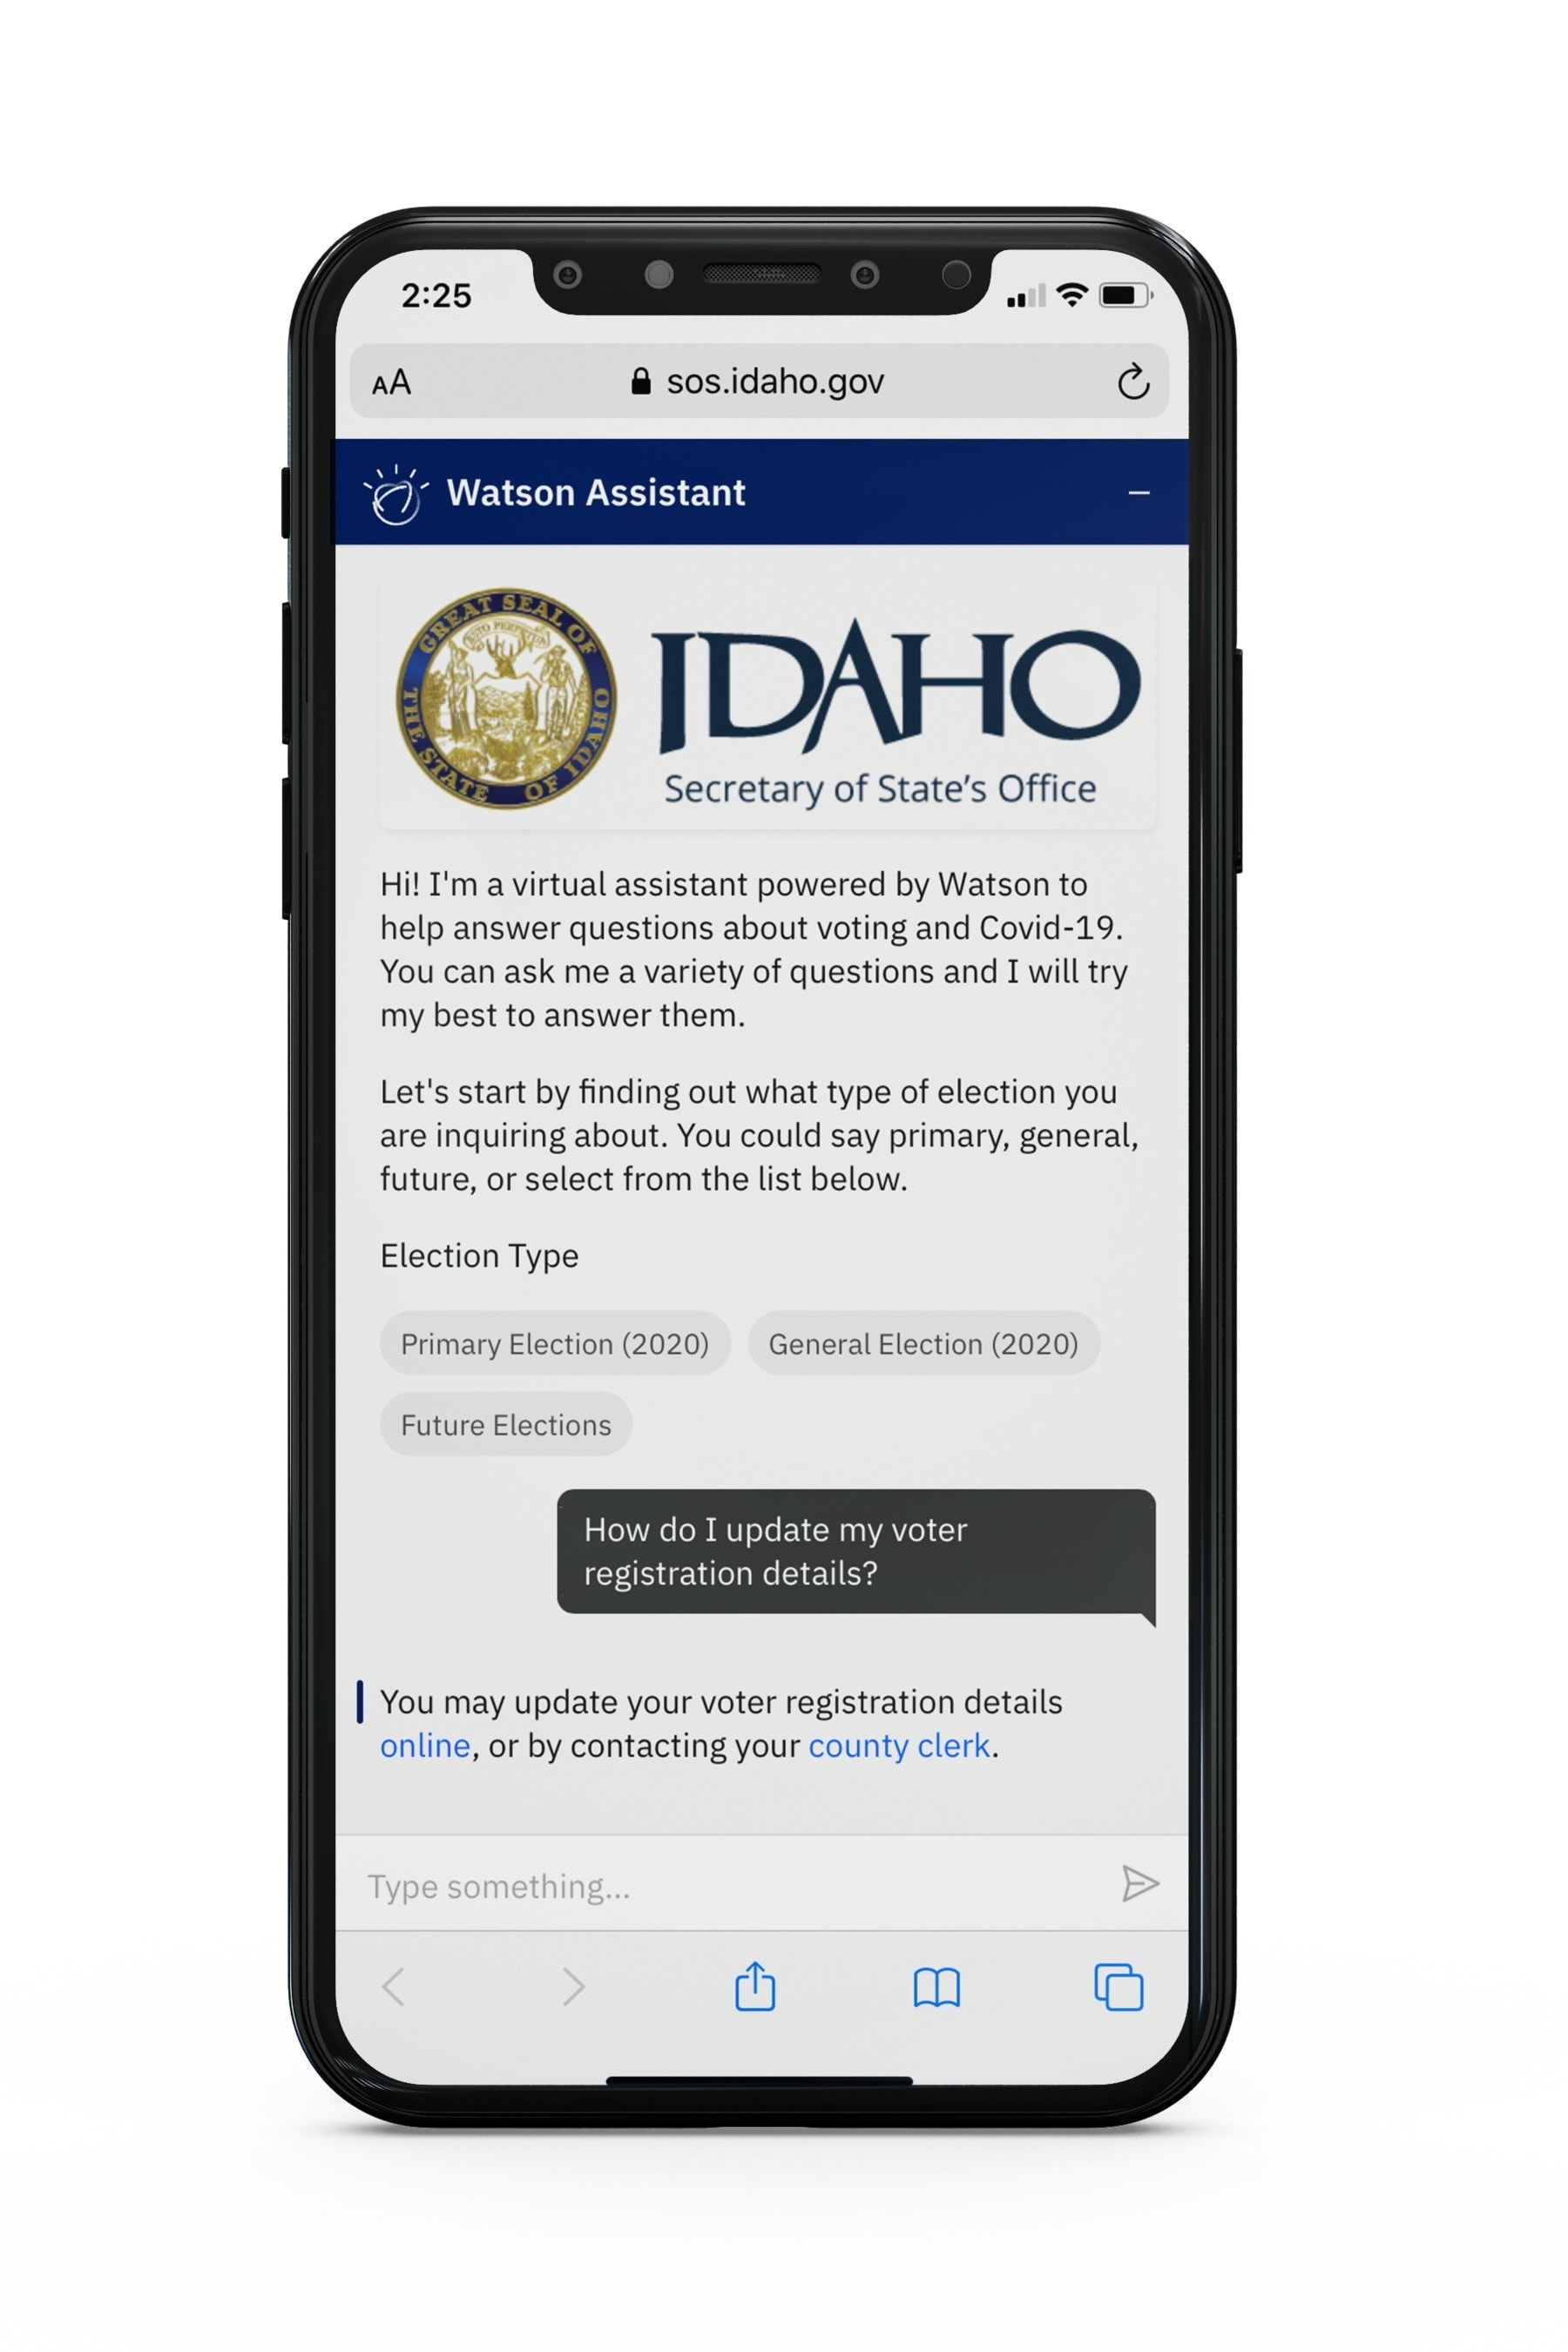 Screenshot showing Idaho Secretary of State virtual assistant application